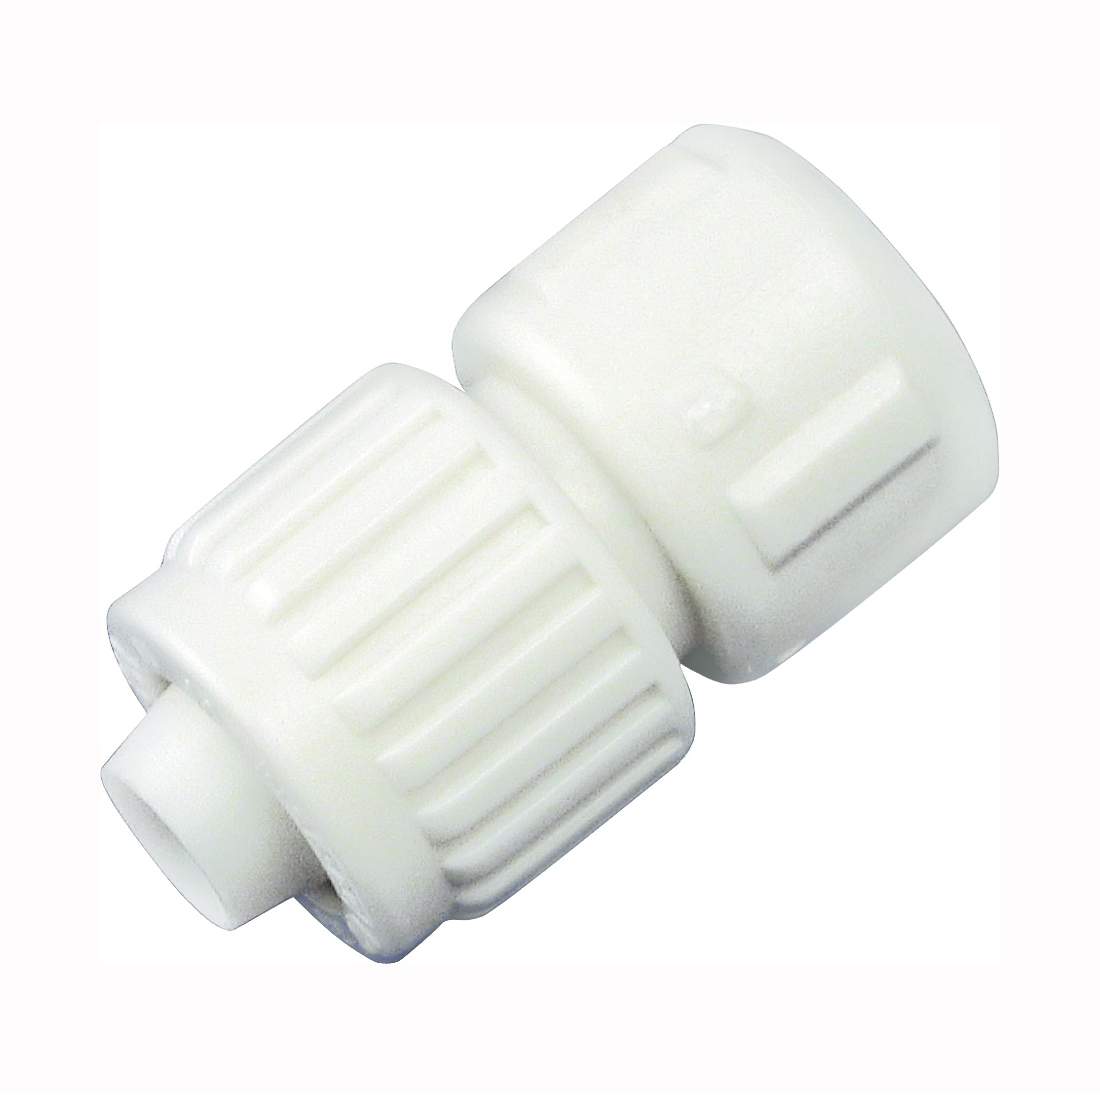 Picture of Flair-It 16841 Tube to Pipe Adapter, 1/2 in, PEX x FPT, Polyoxymethylene, White